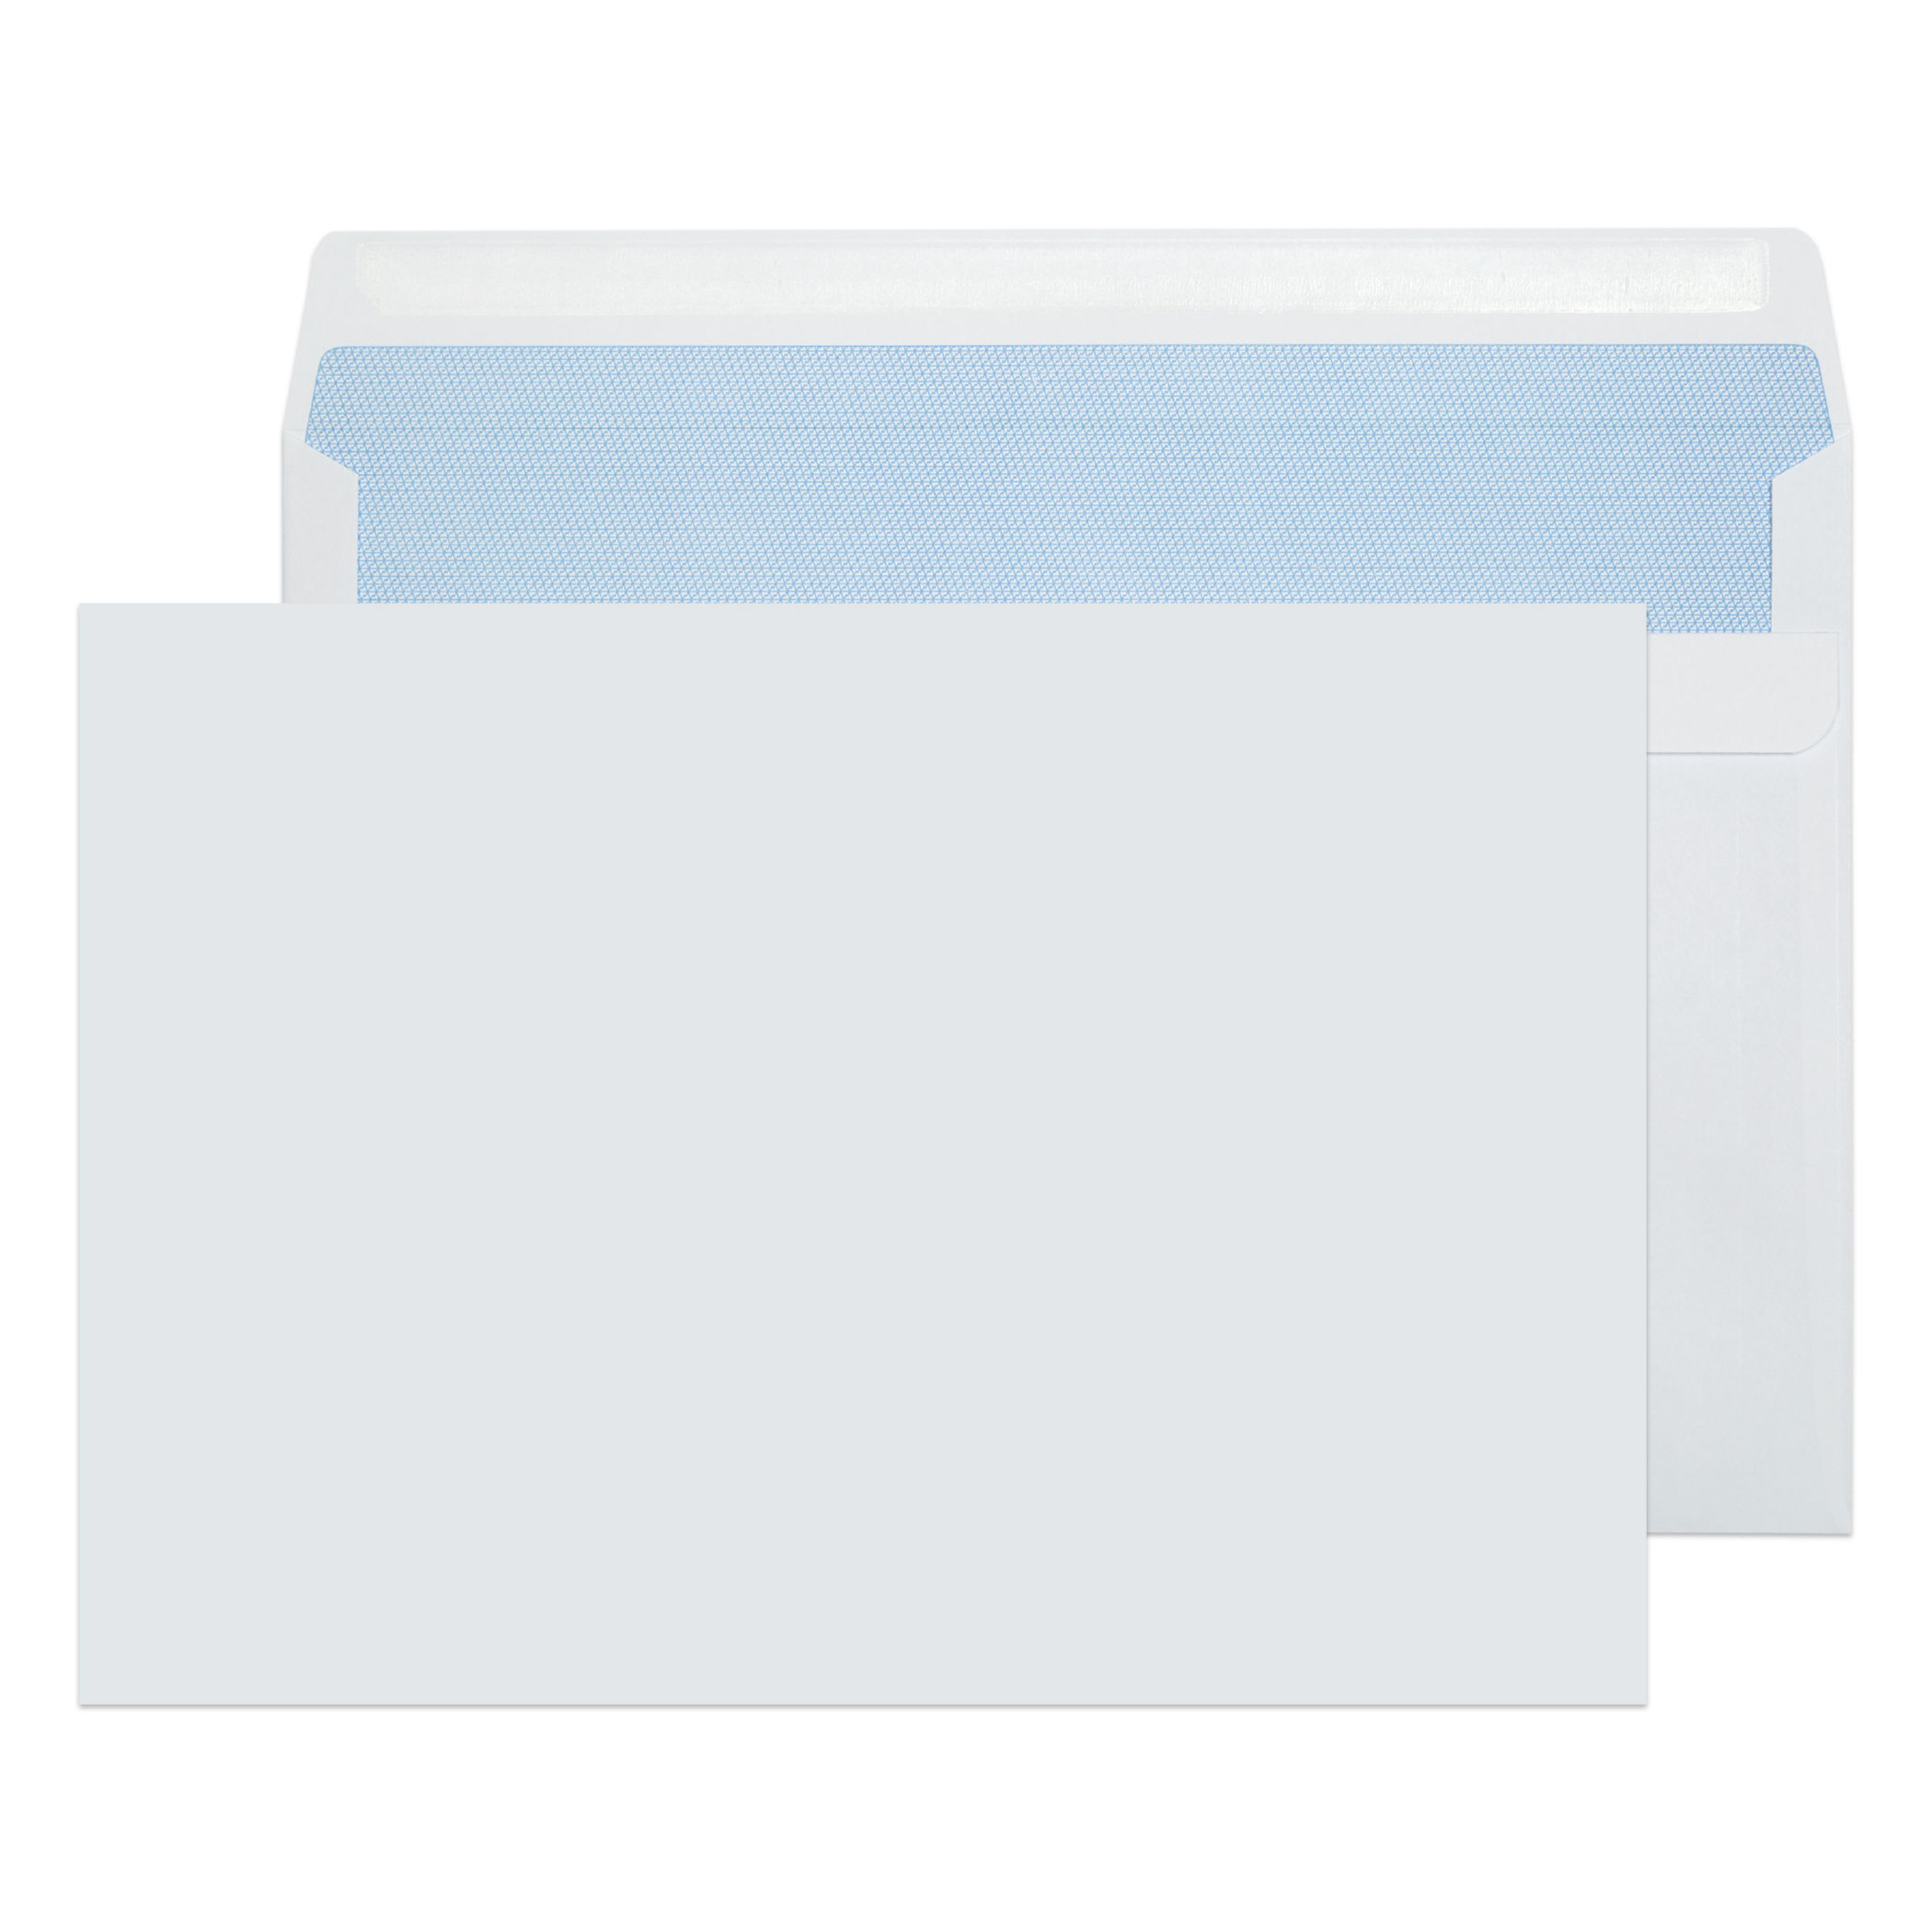 C5 Purely Everyday White Self Seal Wallet C5 90gsm PK500